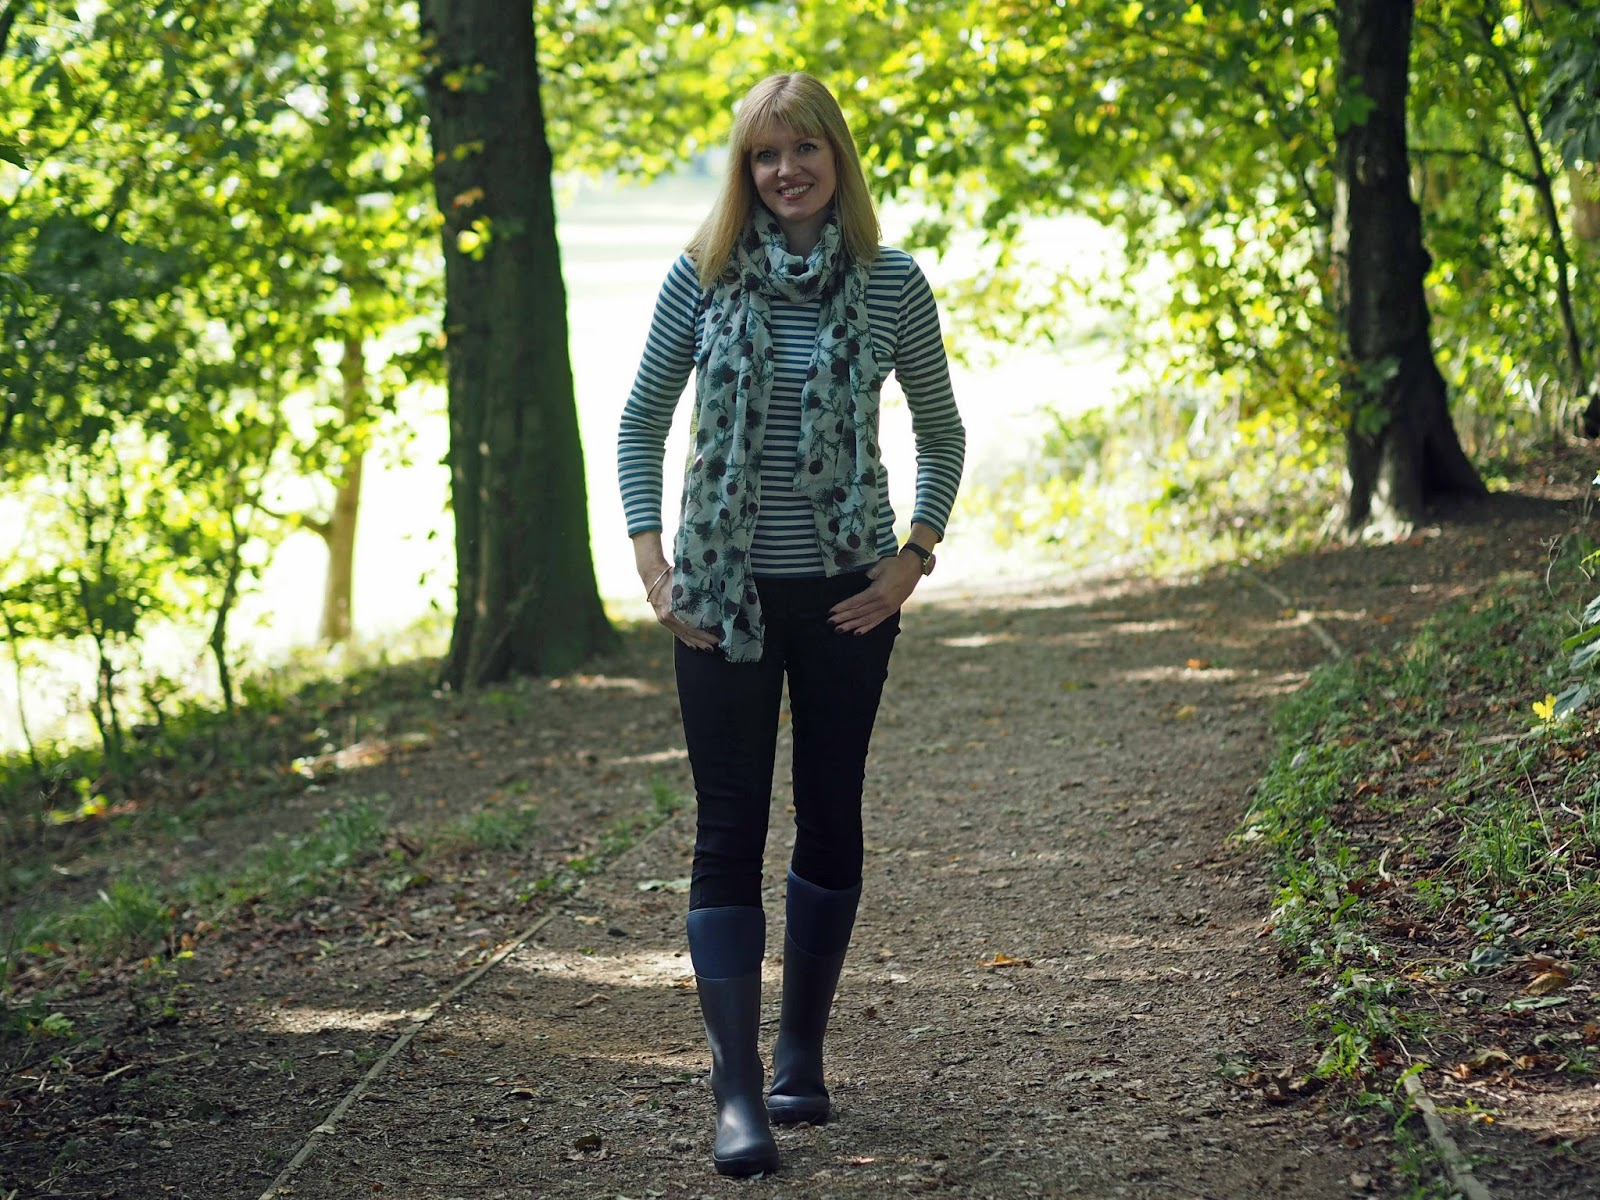 Tulchan striped breton top, floral thistle scarf, skinny jeans and muck boots